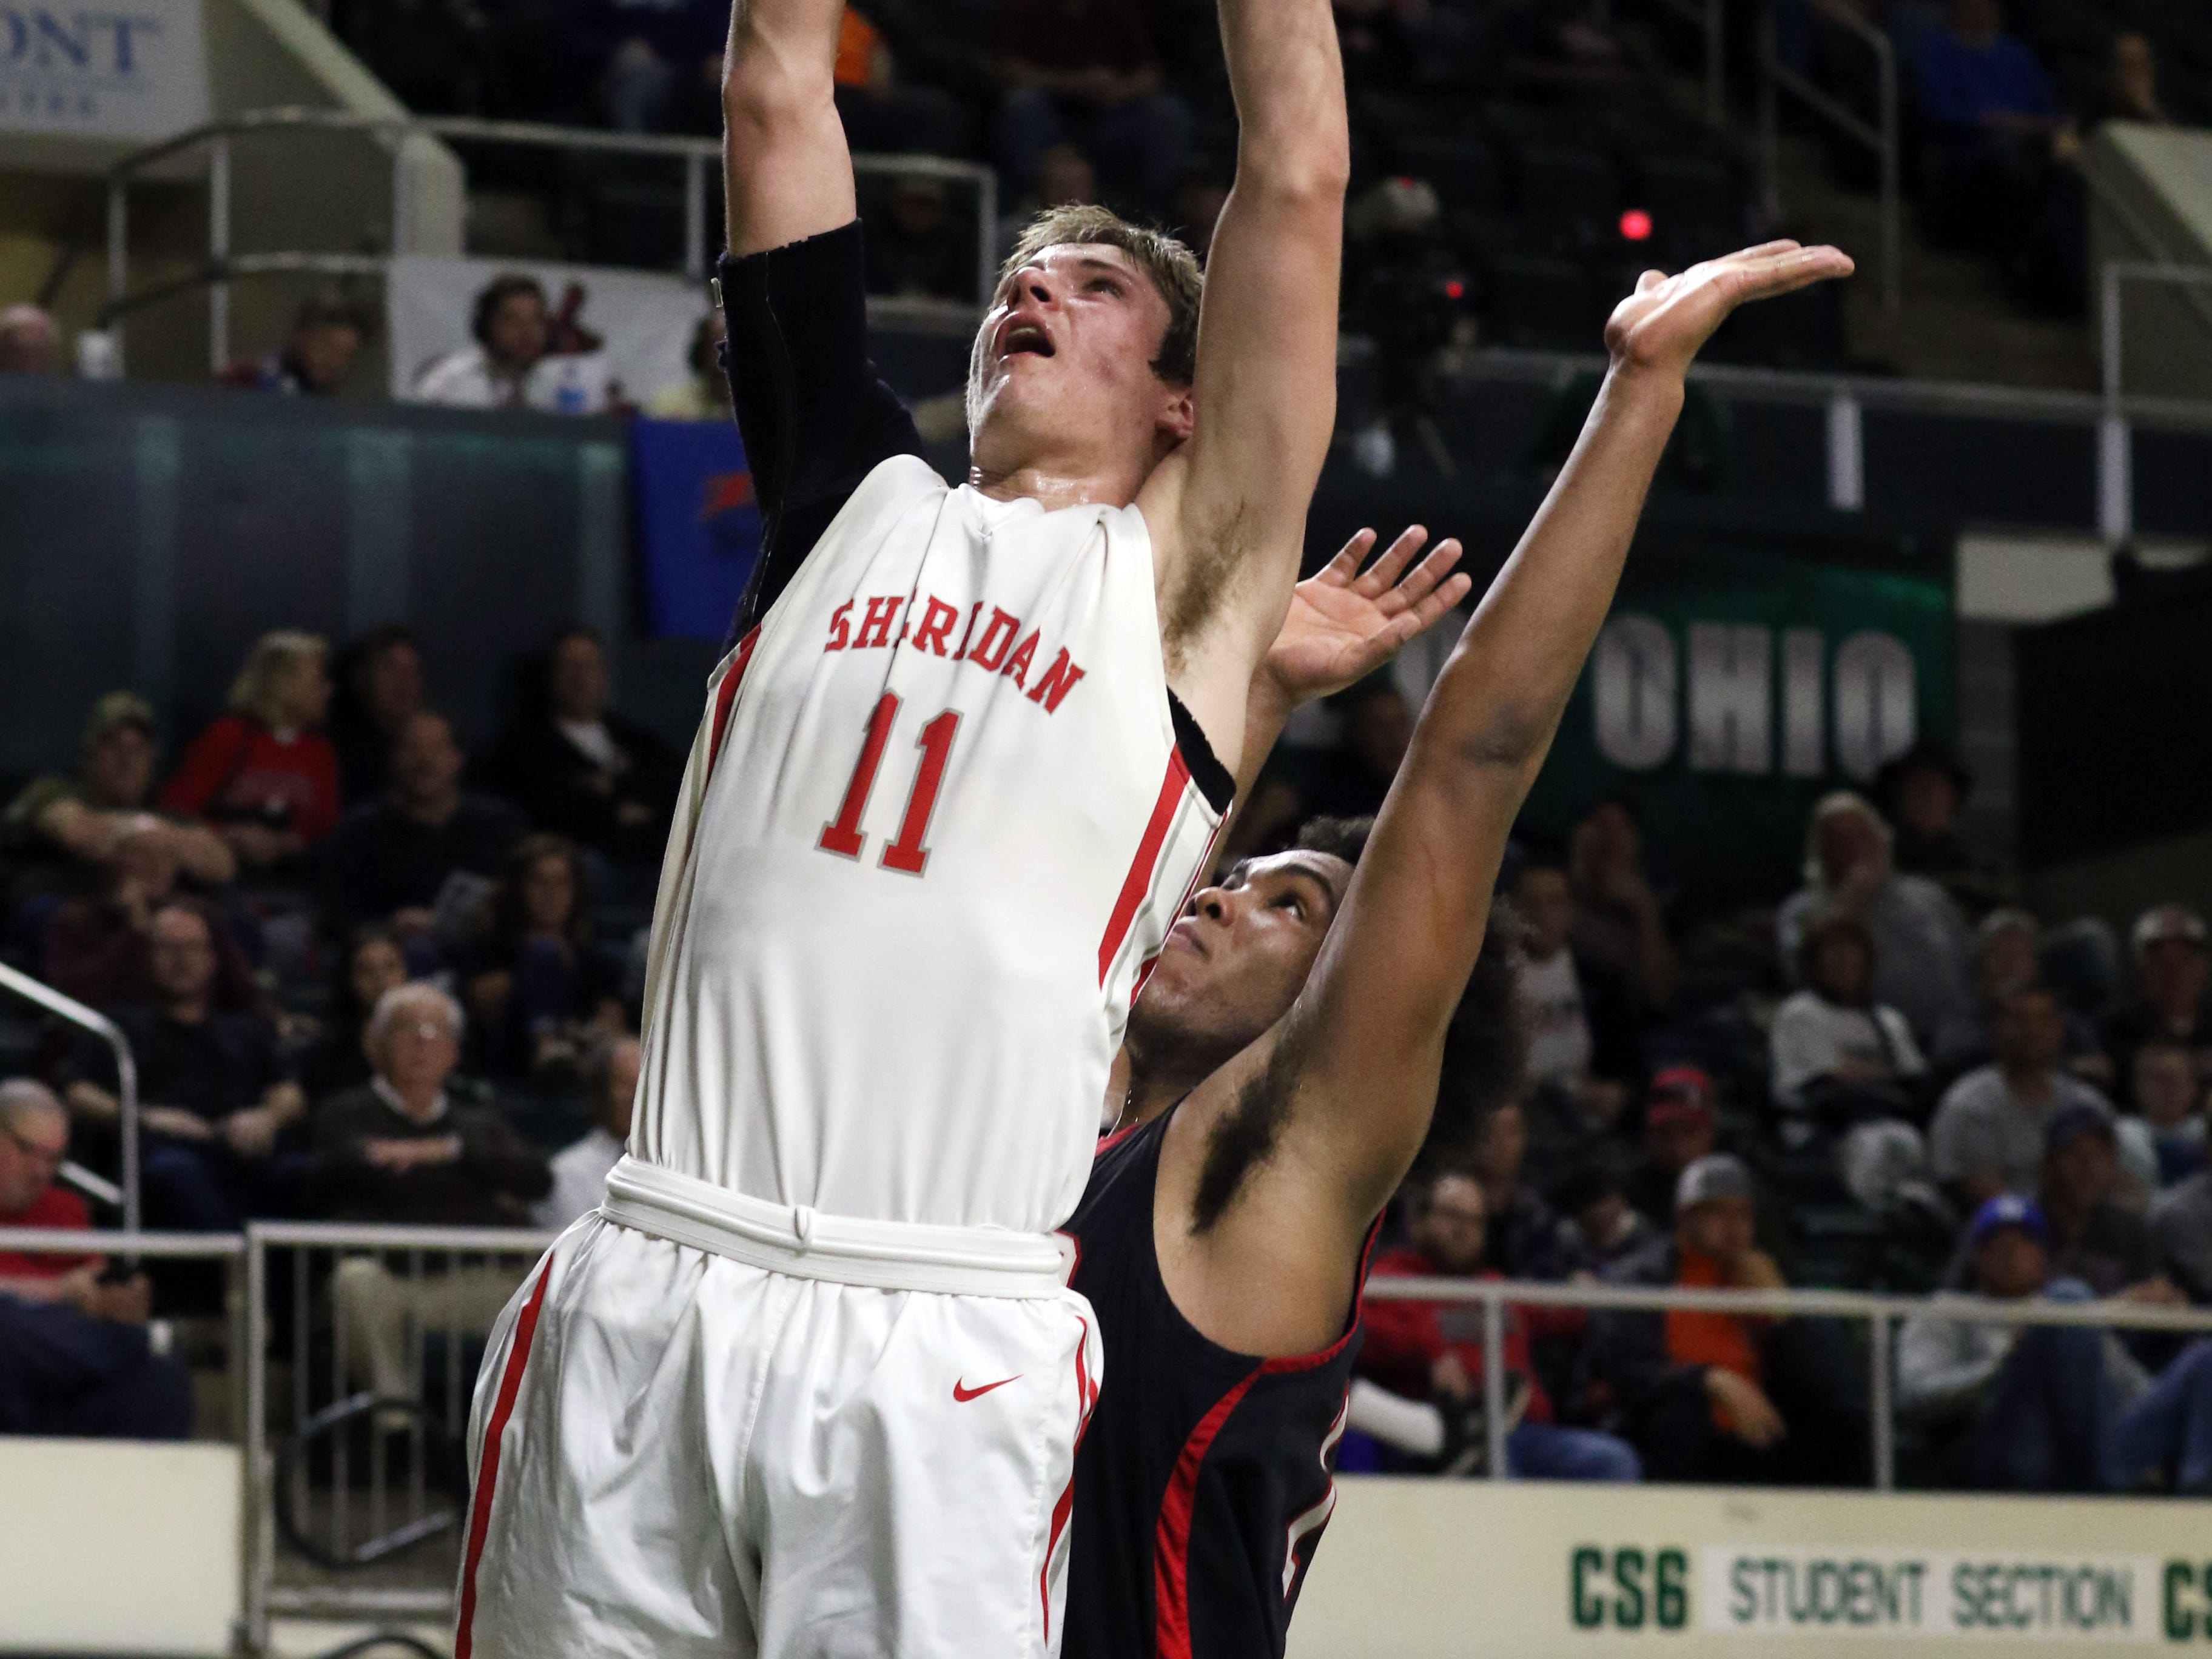 Sheridan's Luken Hill puts up a shot against Steubenville in the Division II regional semifinals Wednesday in Athens.